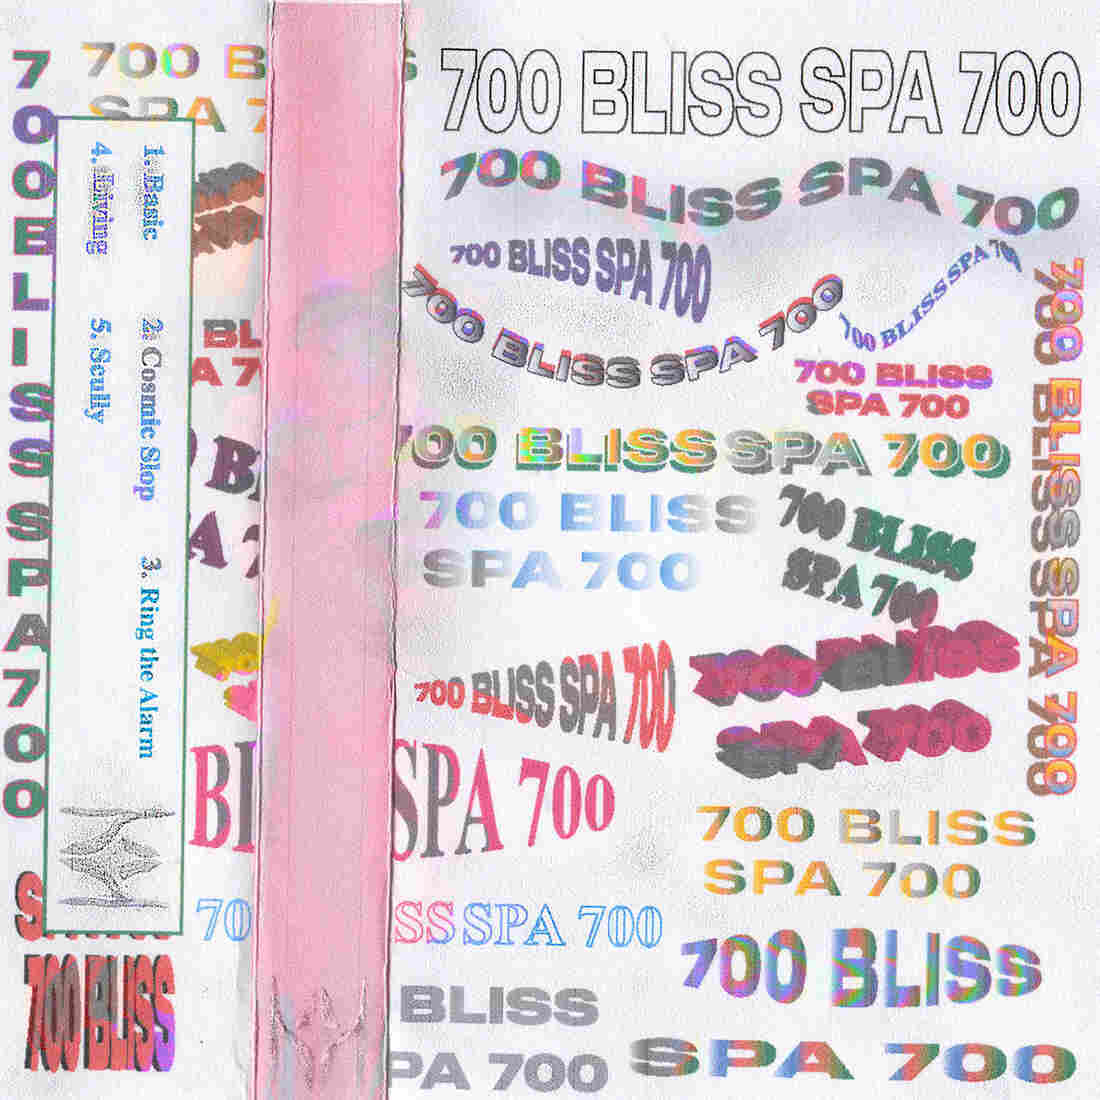 700 Bliss Spa 700 (Halcyon Veil)